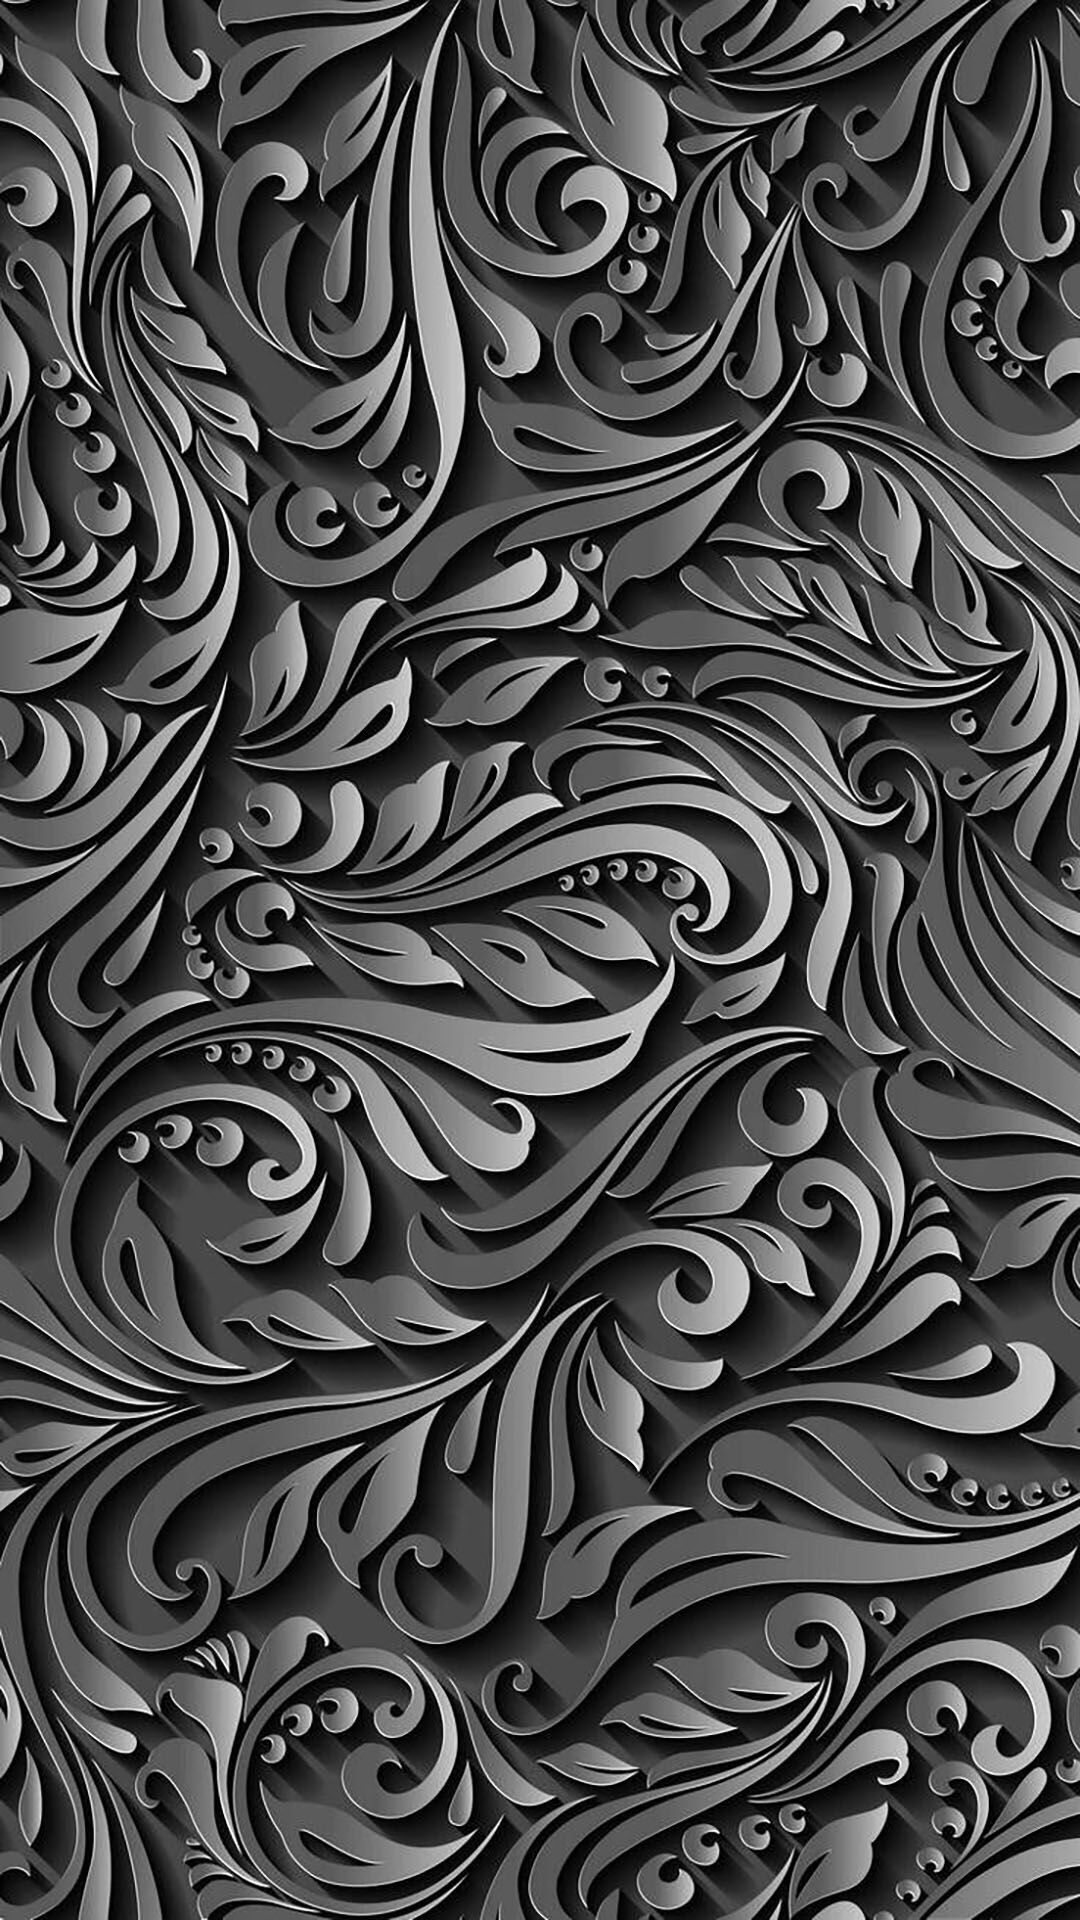 Grey Wallpapers S20 - iPhone 12 - Note 20 - P40 Pro